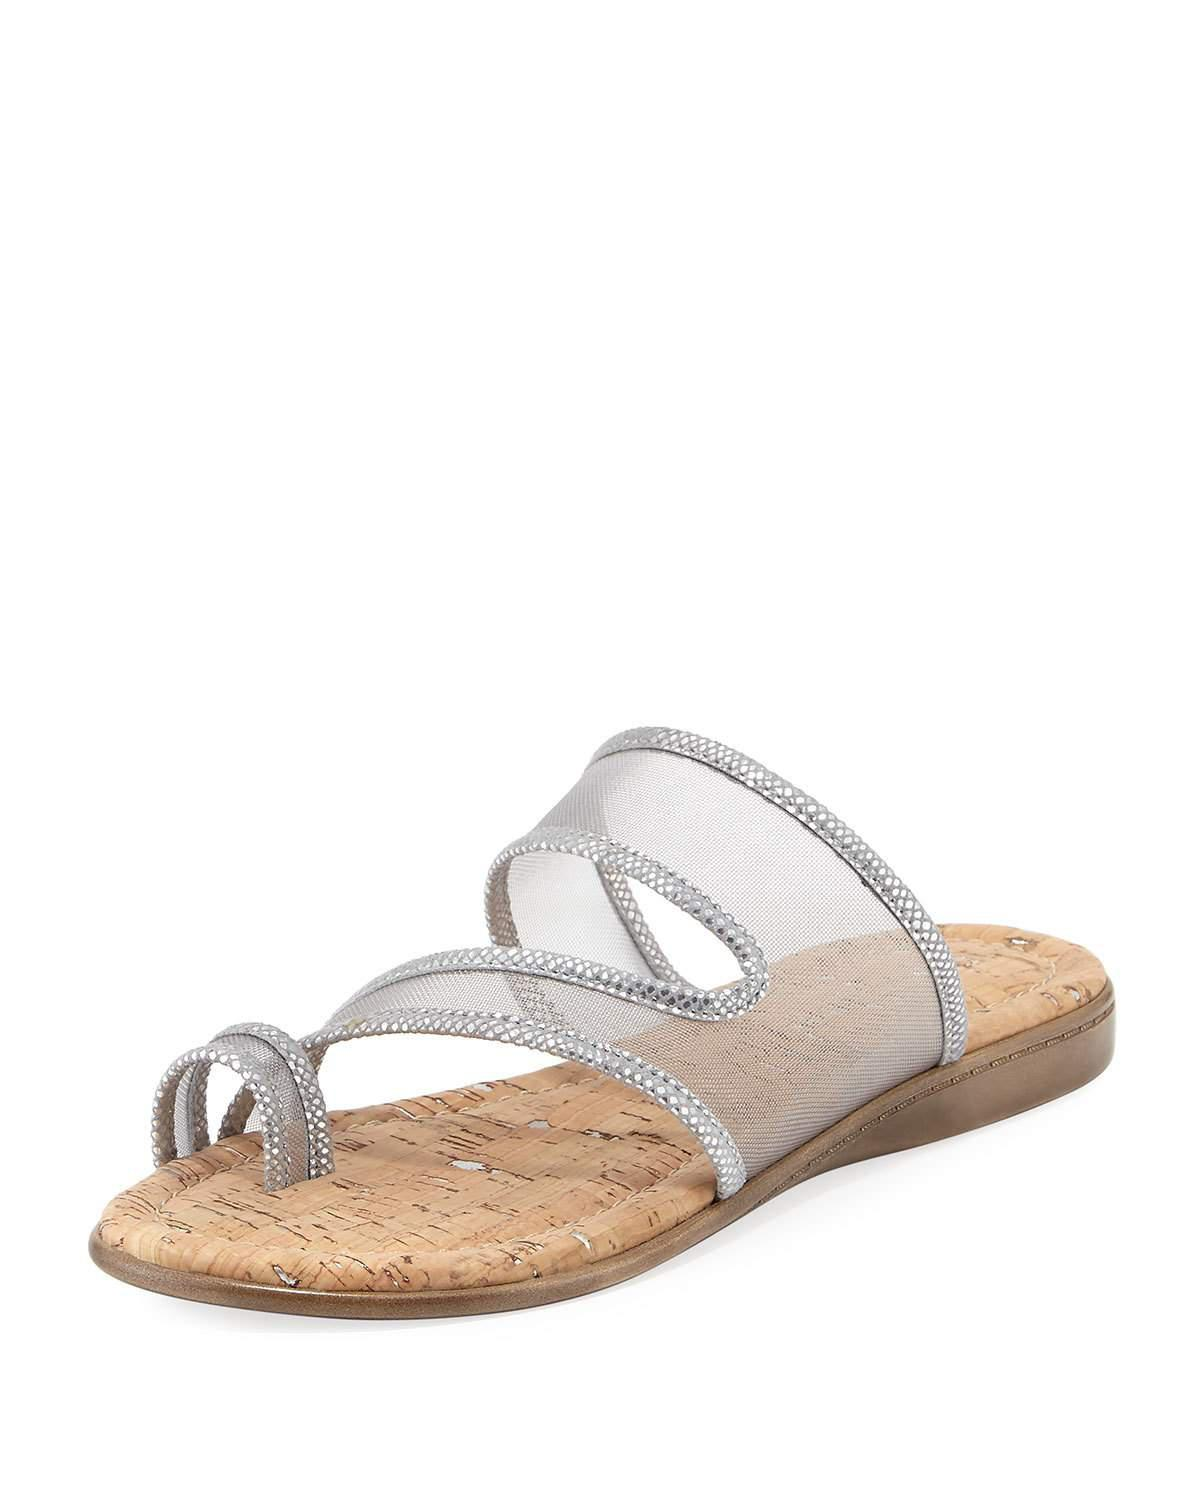 Donald J Pliner Mesh Slide Sandals